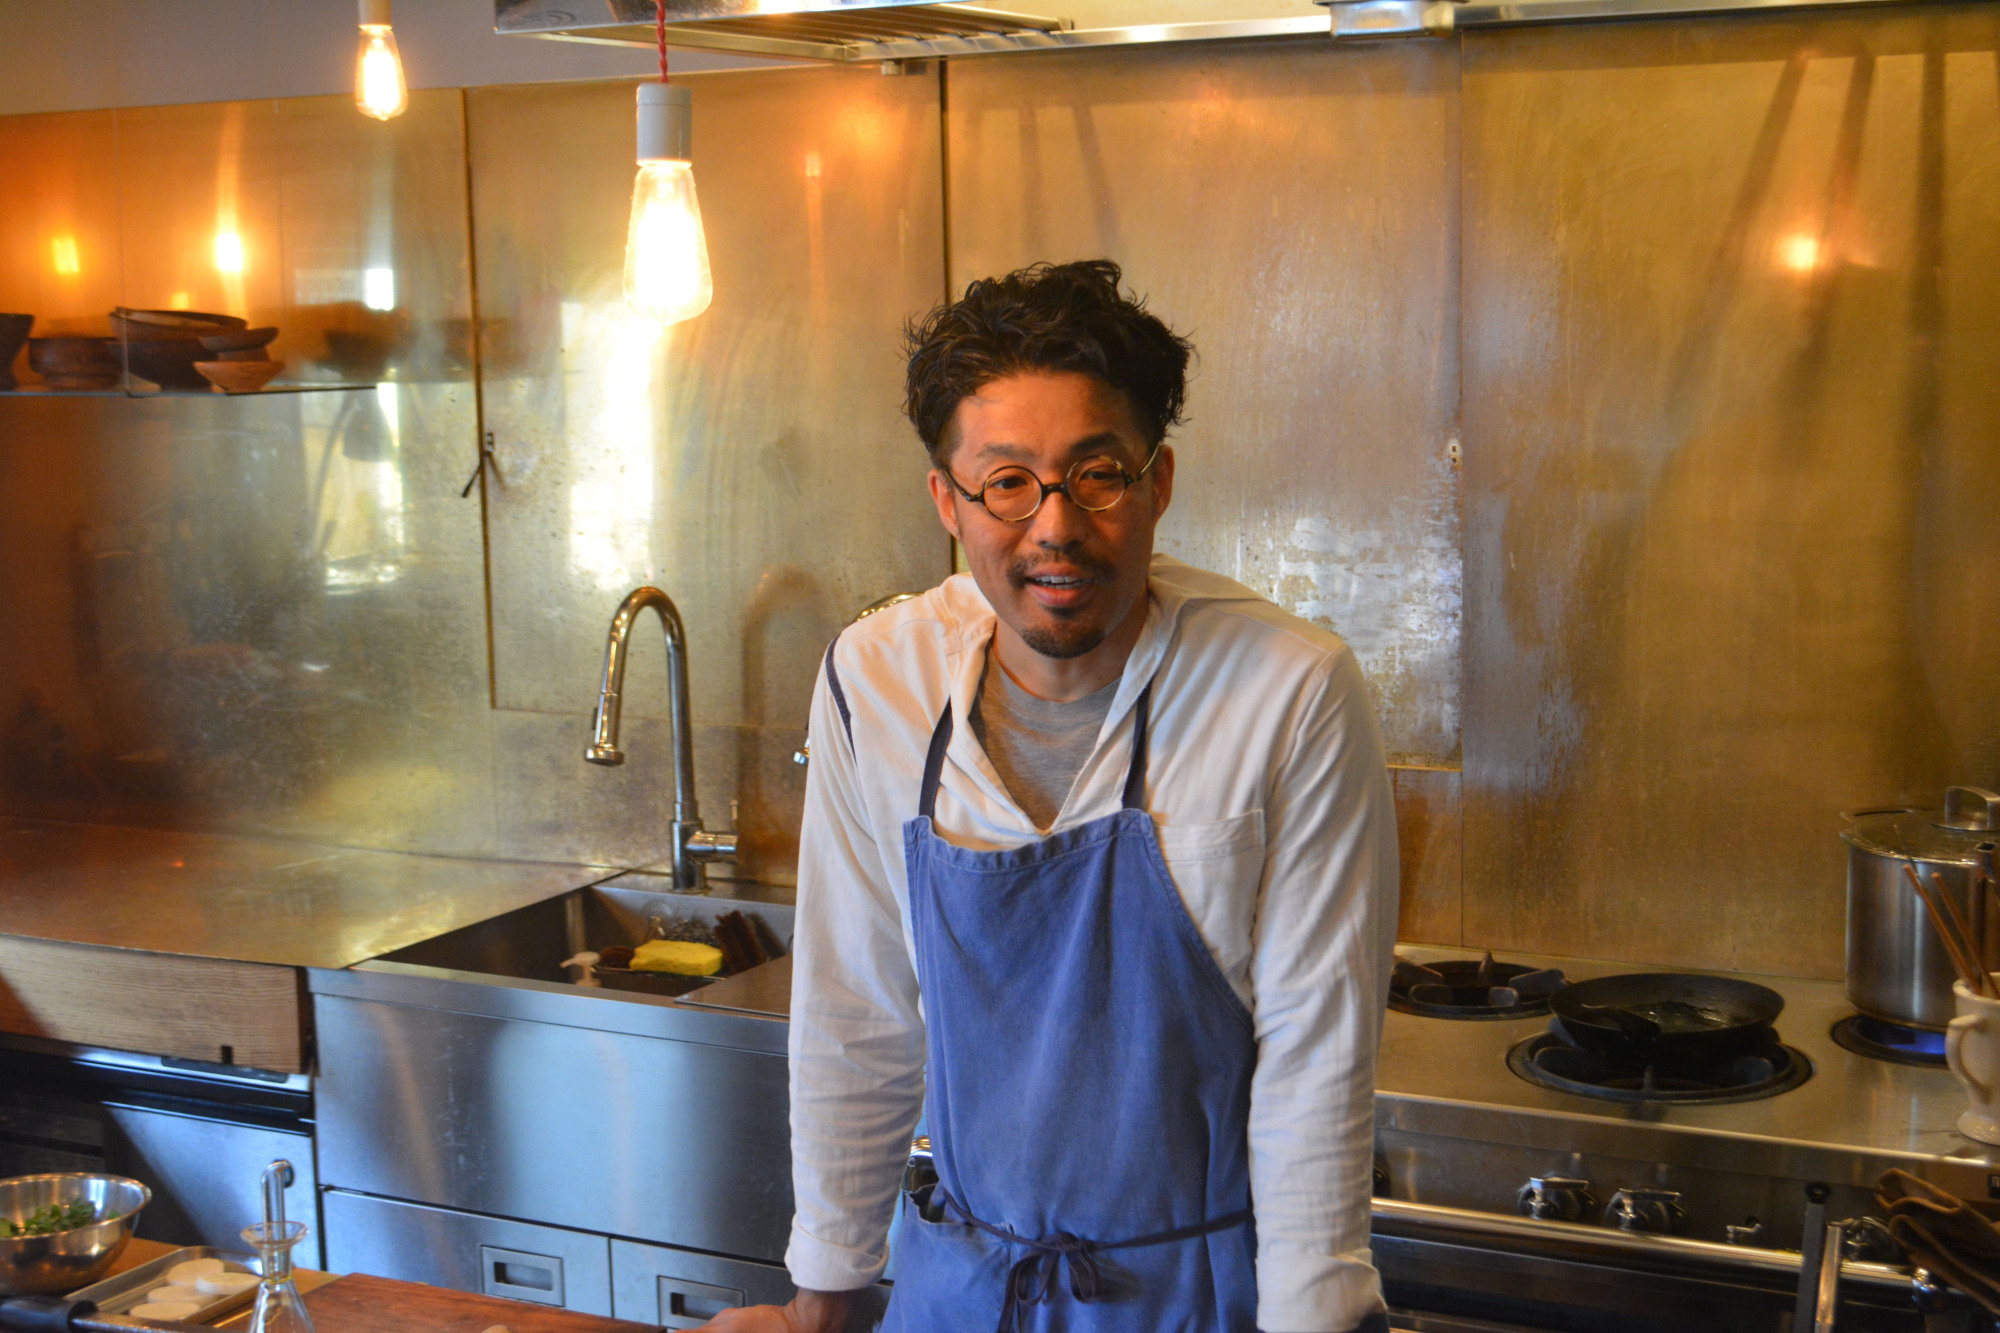 Born to be a chef: Kei Yoshioka knew from university that he wanted to open a restaurant, and his parents and siblings are all in the food business. | J.J. O'DONOGHUE